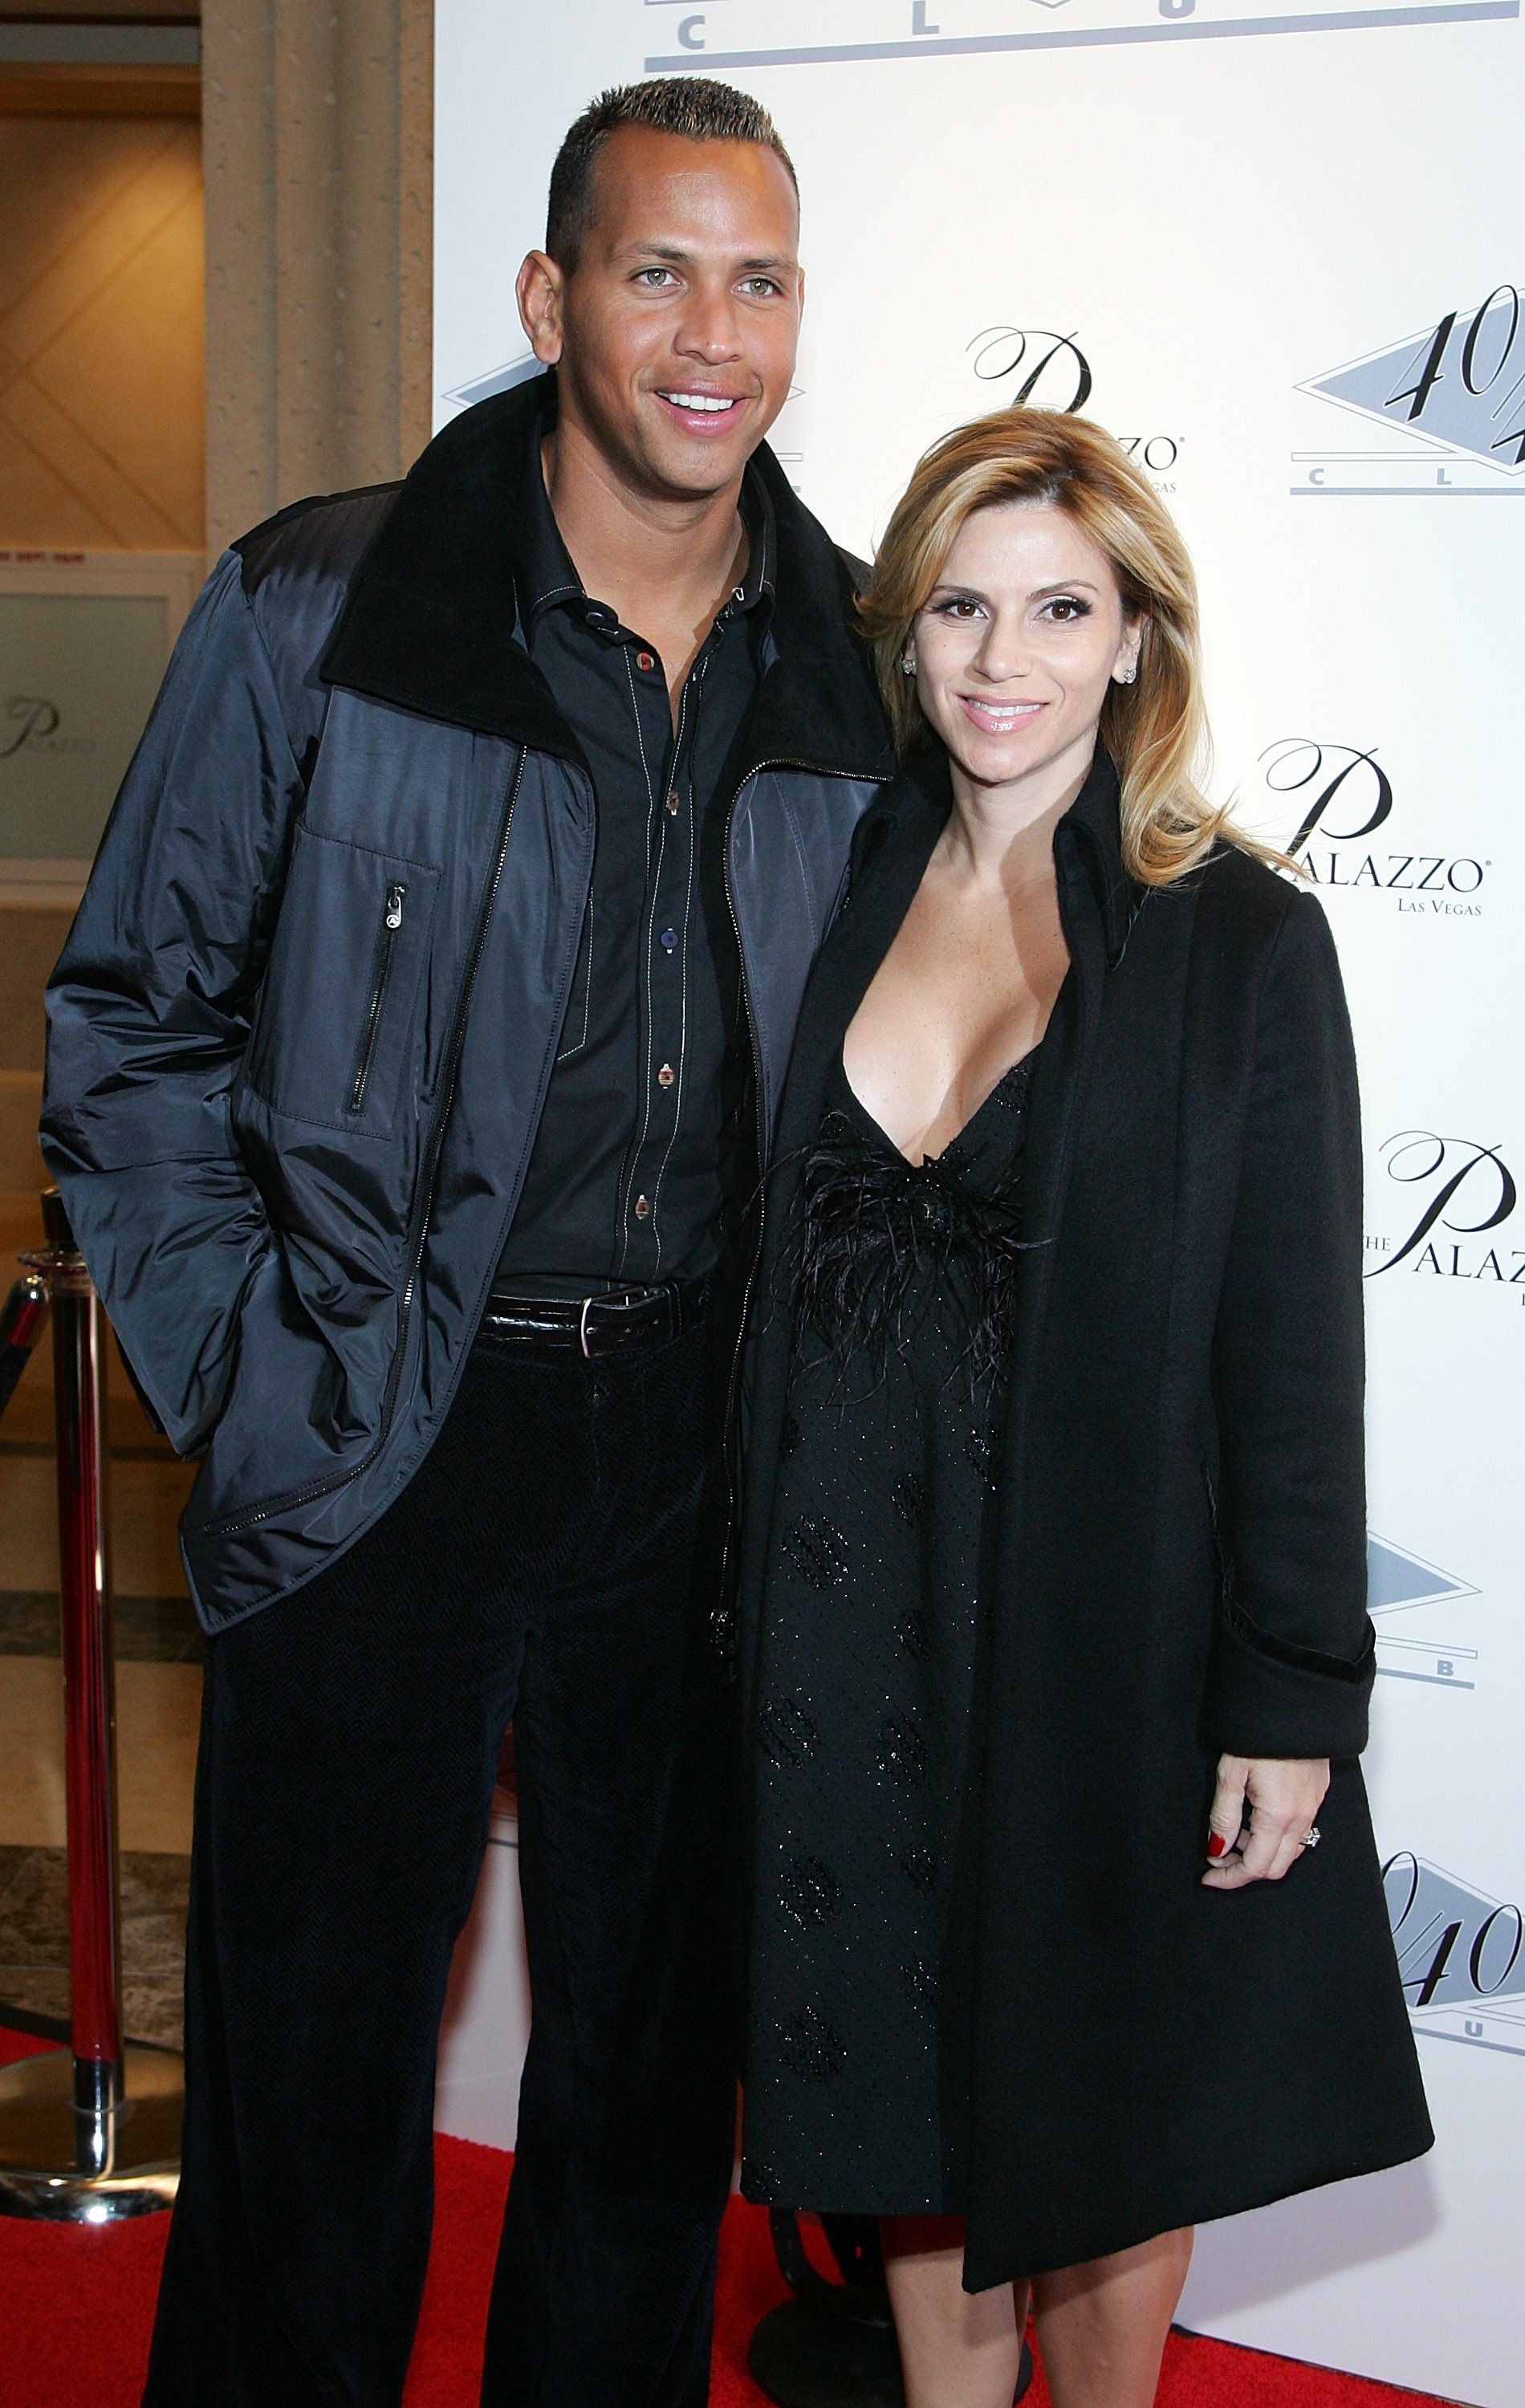 Alex Rodriguez and Cynthia Scurtis on December 30, 2007 in Las Vegas, Nevada | Source: Getty Images